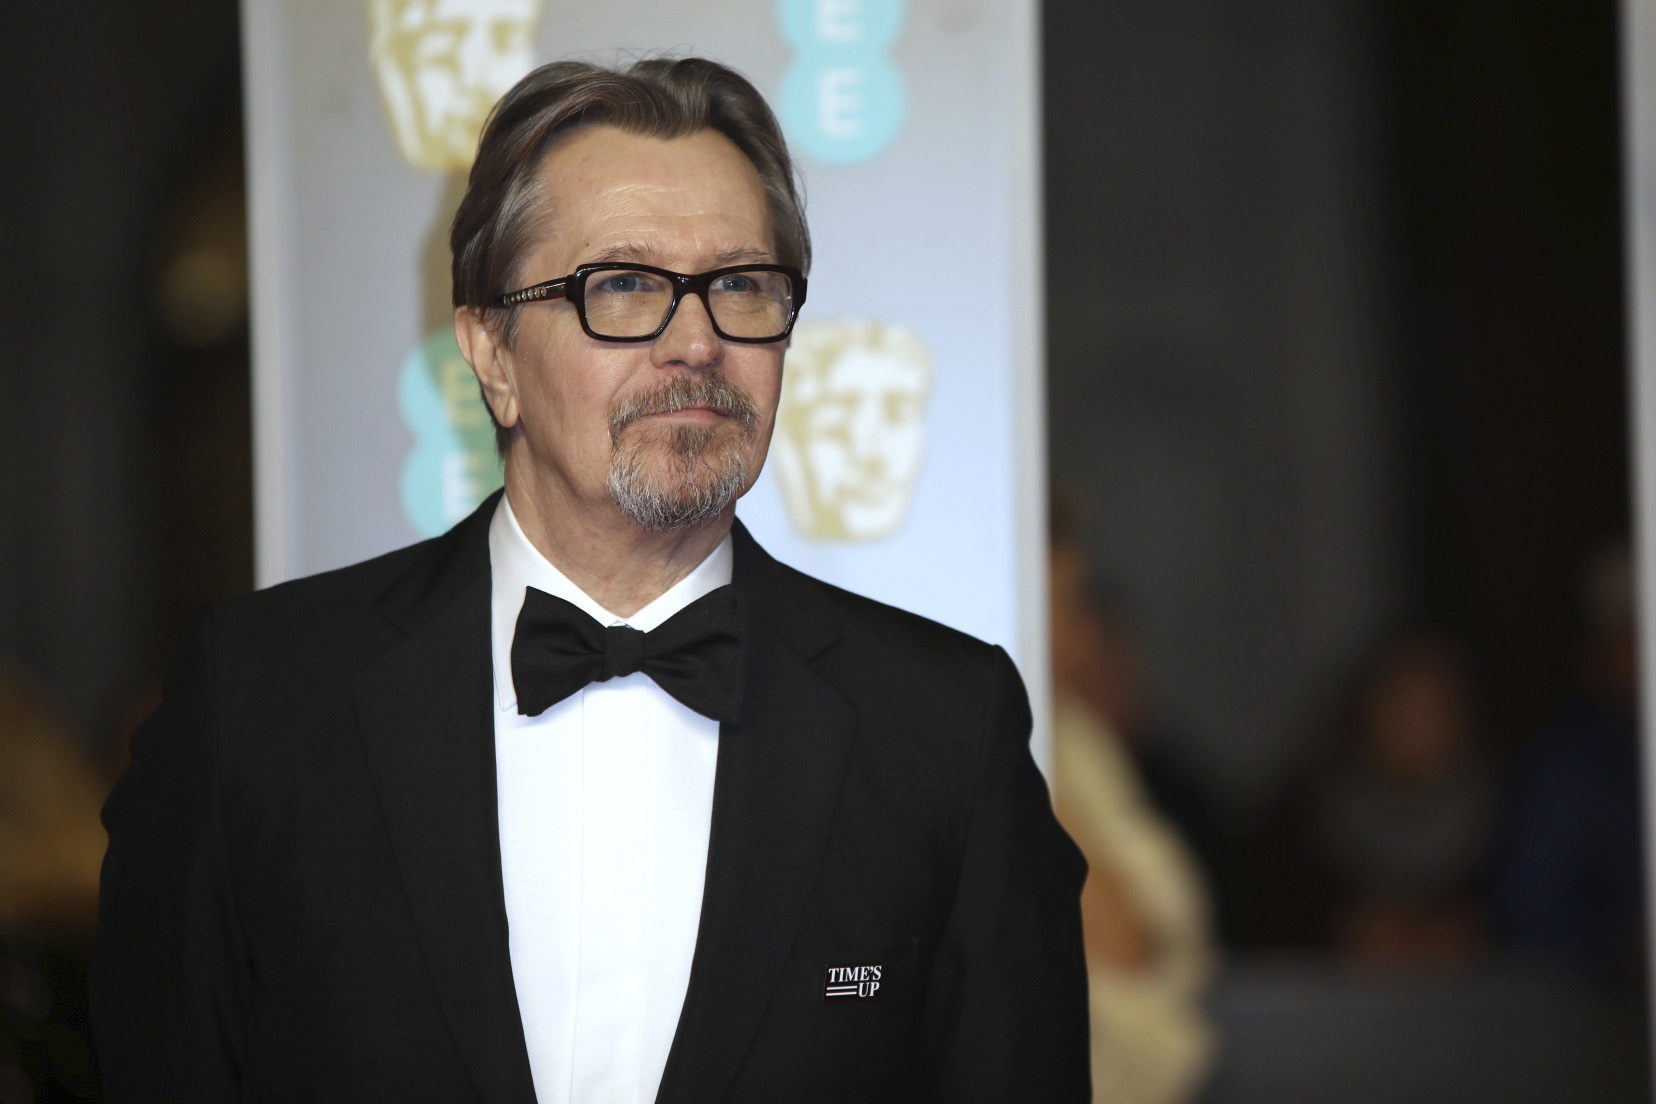 <div class='meta'><div class='origin-logo' data-origin='AP'></div><span class='caption-text' data-credit='Vianney Le Caer/Invision/AP'>Actor Gary Oldman poses for photographers upon arrival at the BAFTA Awards 2018 in London, Sunday, Feb. 18, 2018.</span></div>